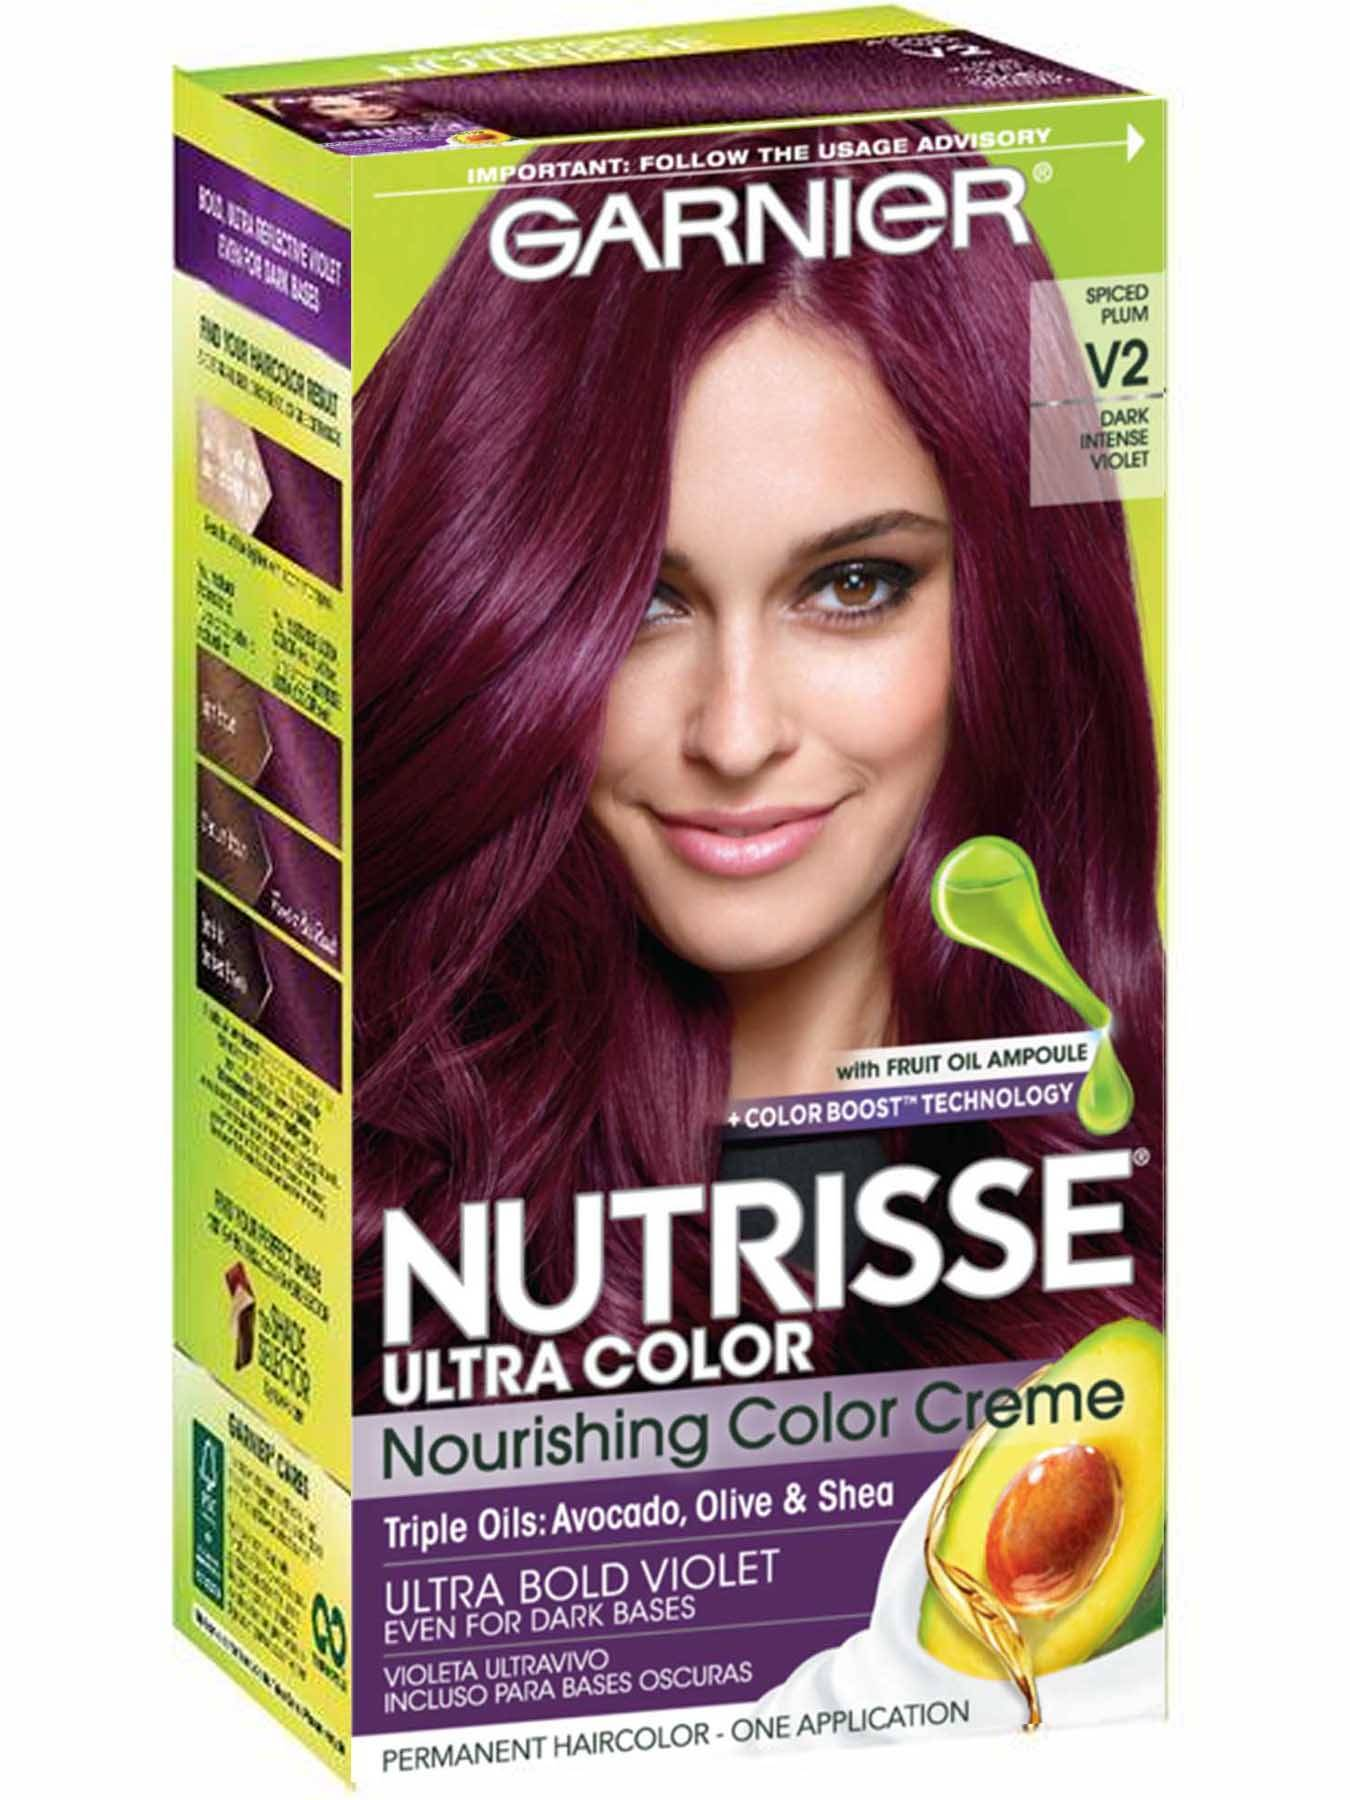 Nutrisse Ultra Color - Dark Intense Violet Hair Color - Garnier